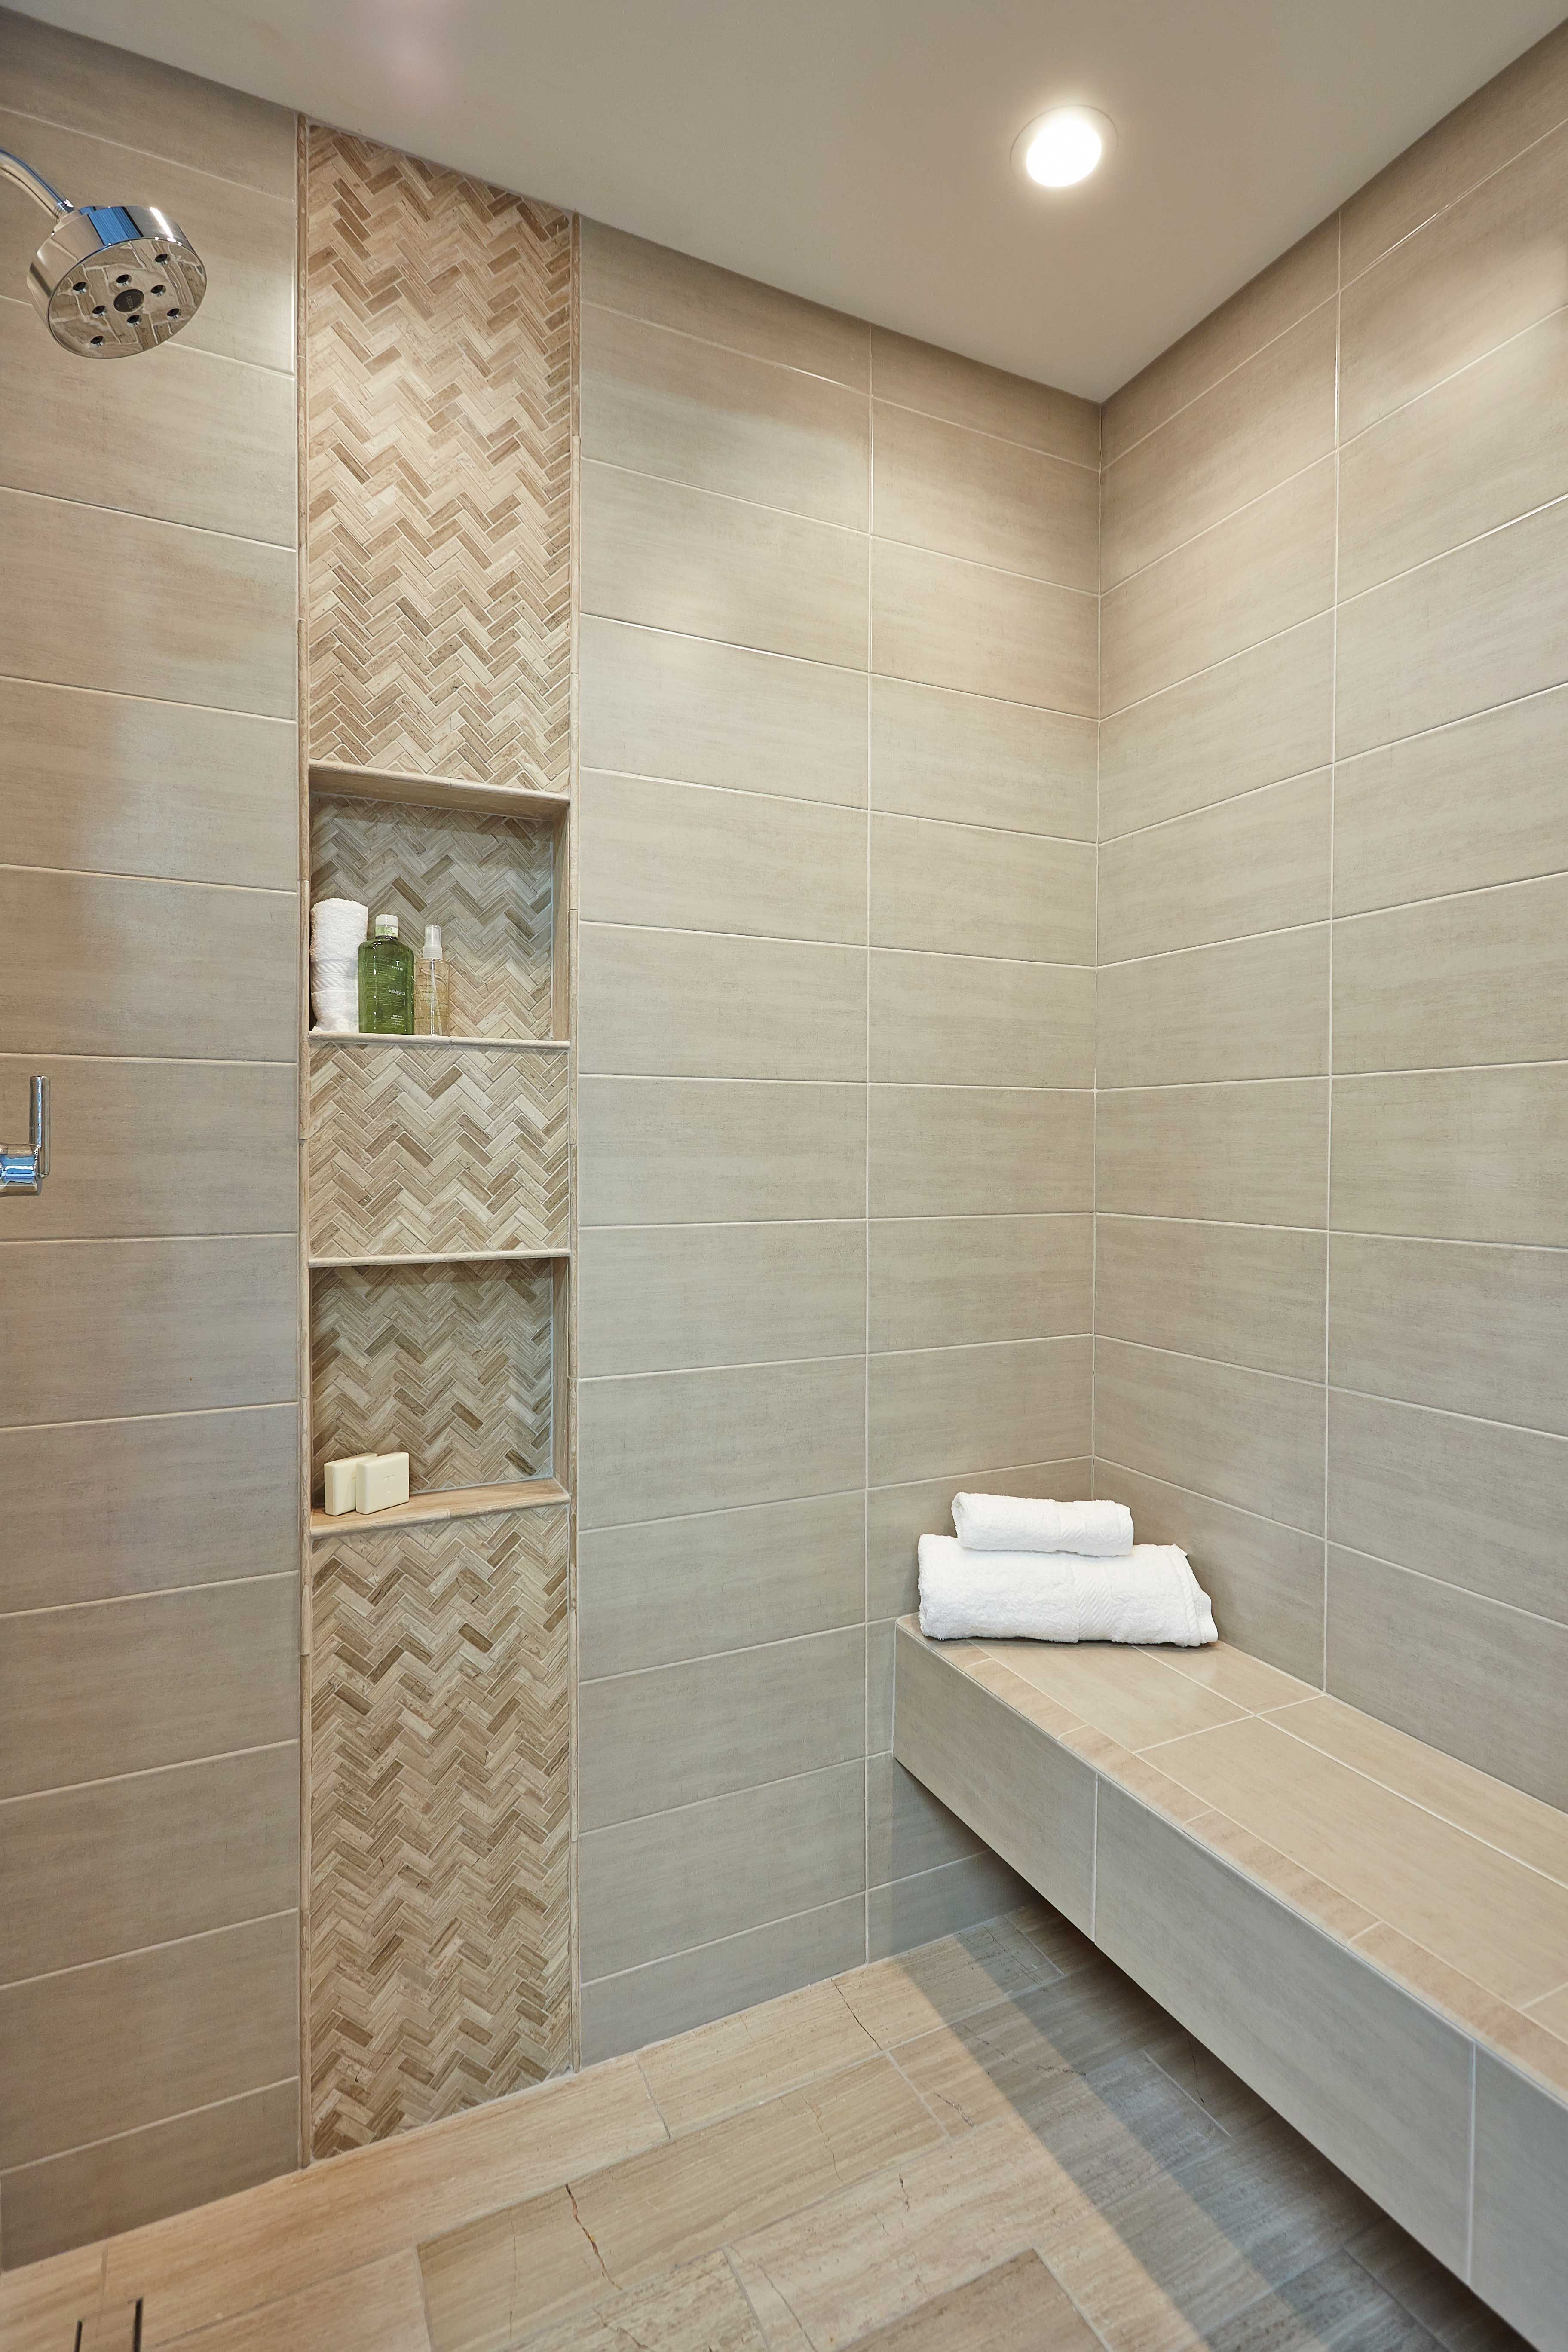 Tile Size For Small Bathroom